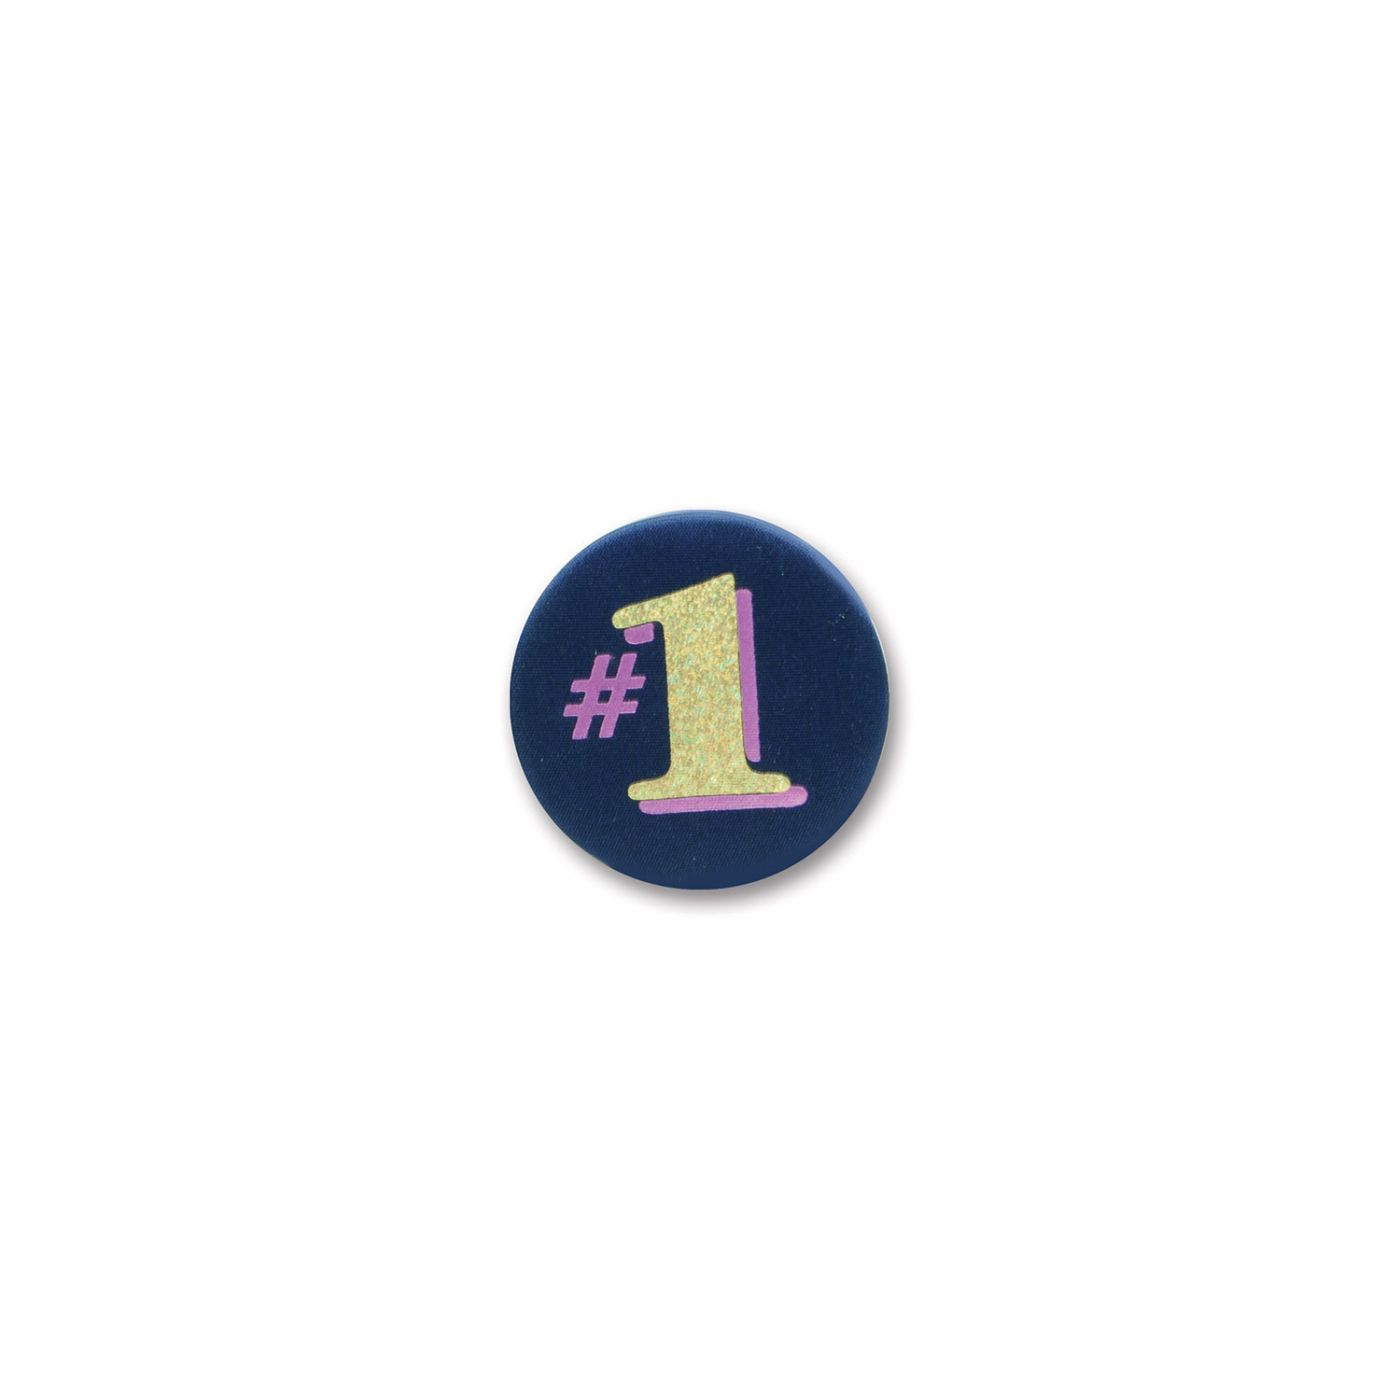 Image of #1 Satin Button (6)